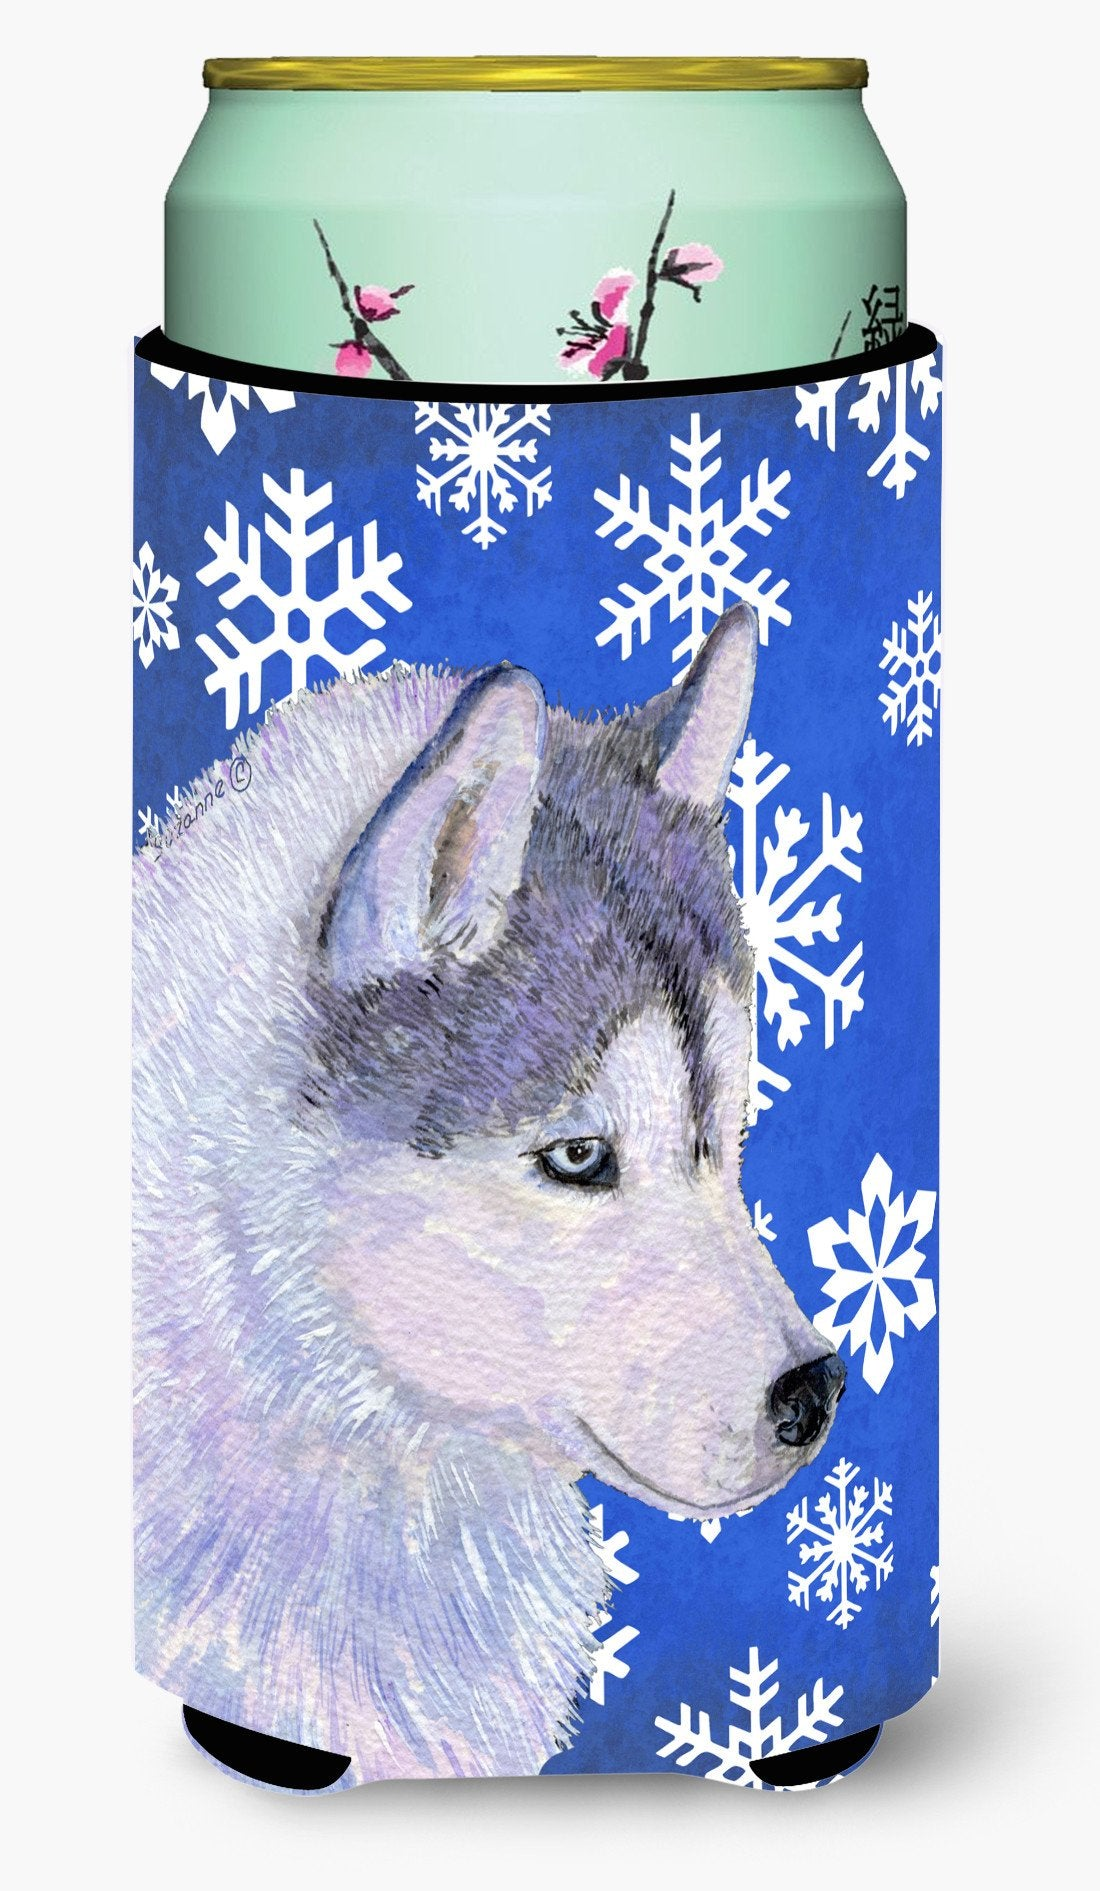 Siberian Husky Winter Snowflakes Holiday  Tall Boy Beverage Insulator Beverage Insulator Hugger by Caroline's Treasures